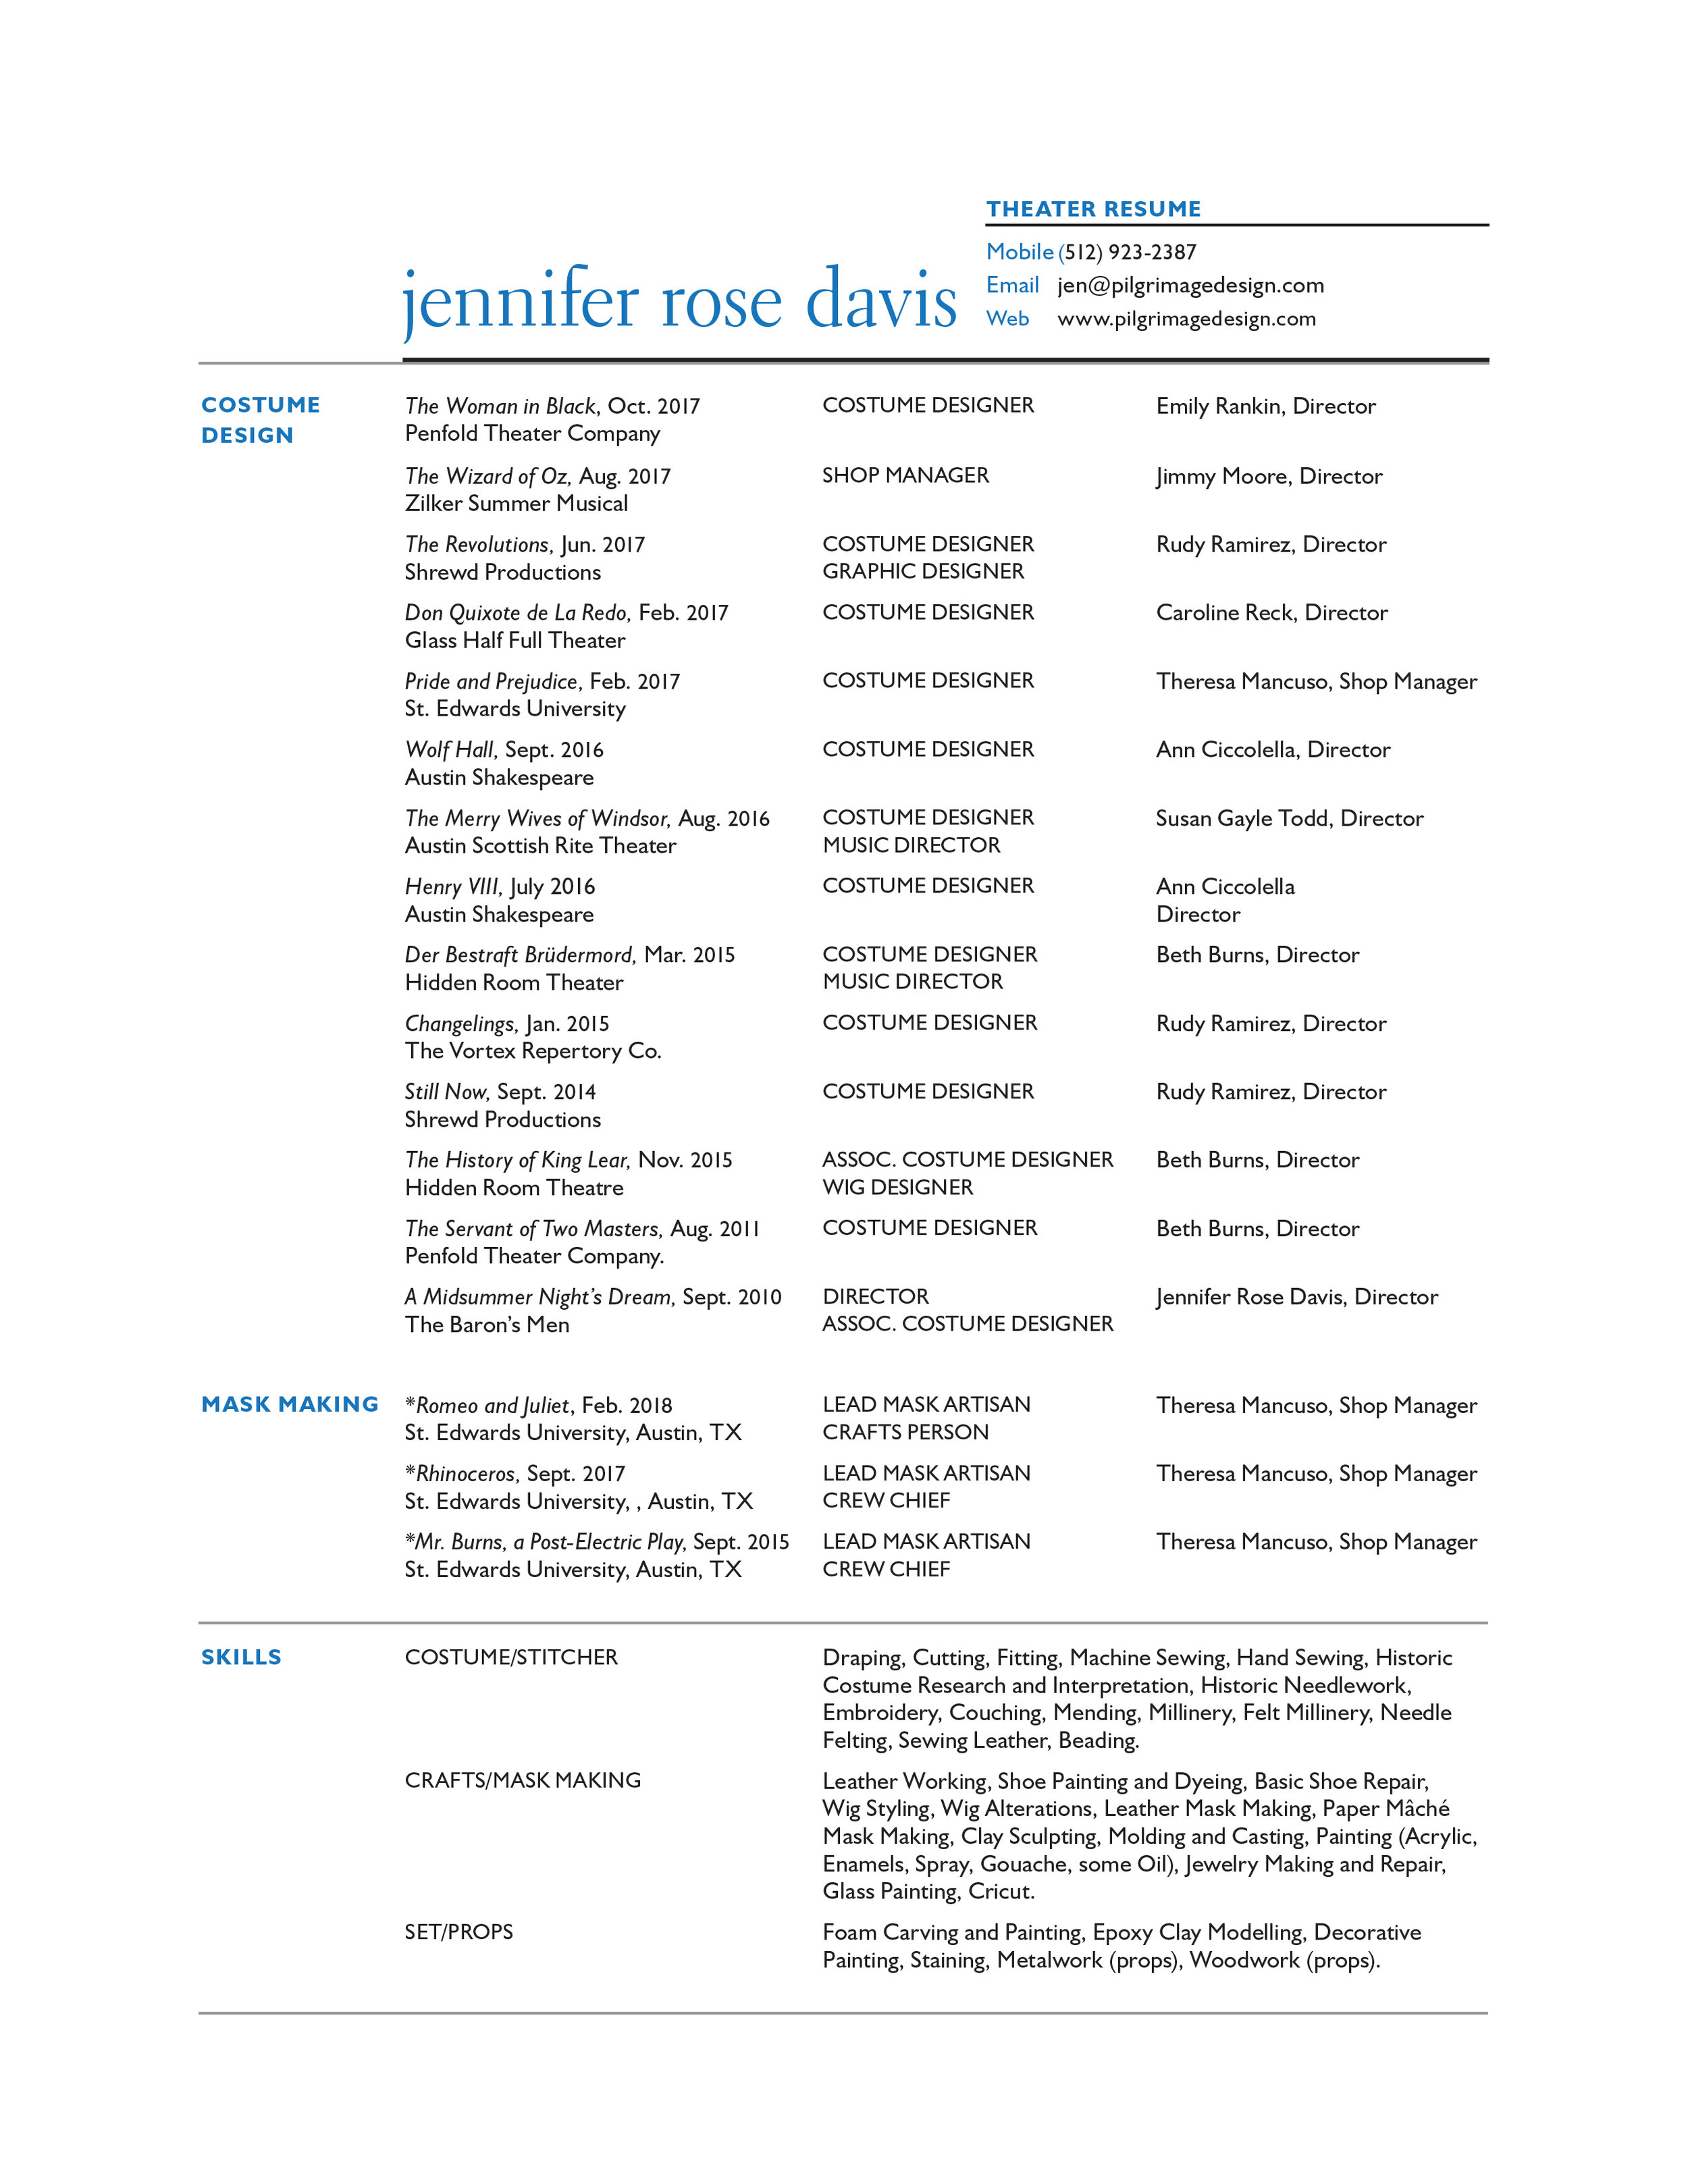 Jennifer Rose Davis Resume-3.jpg